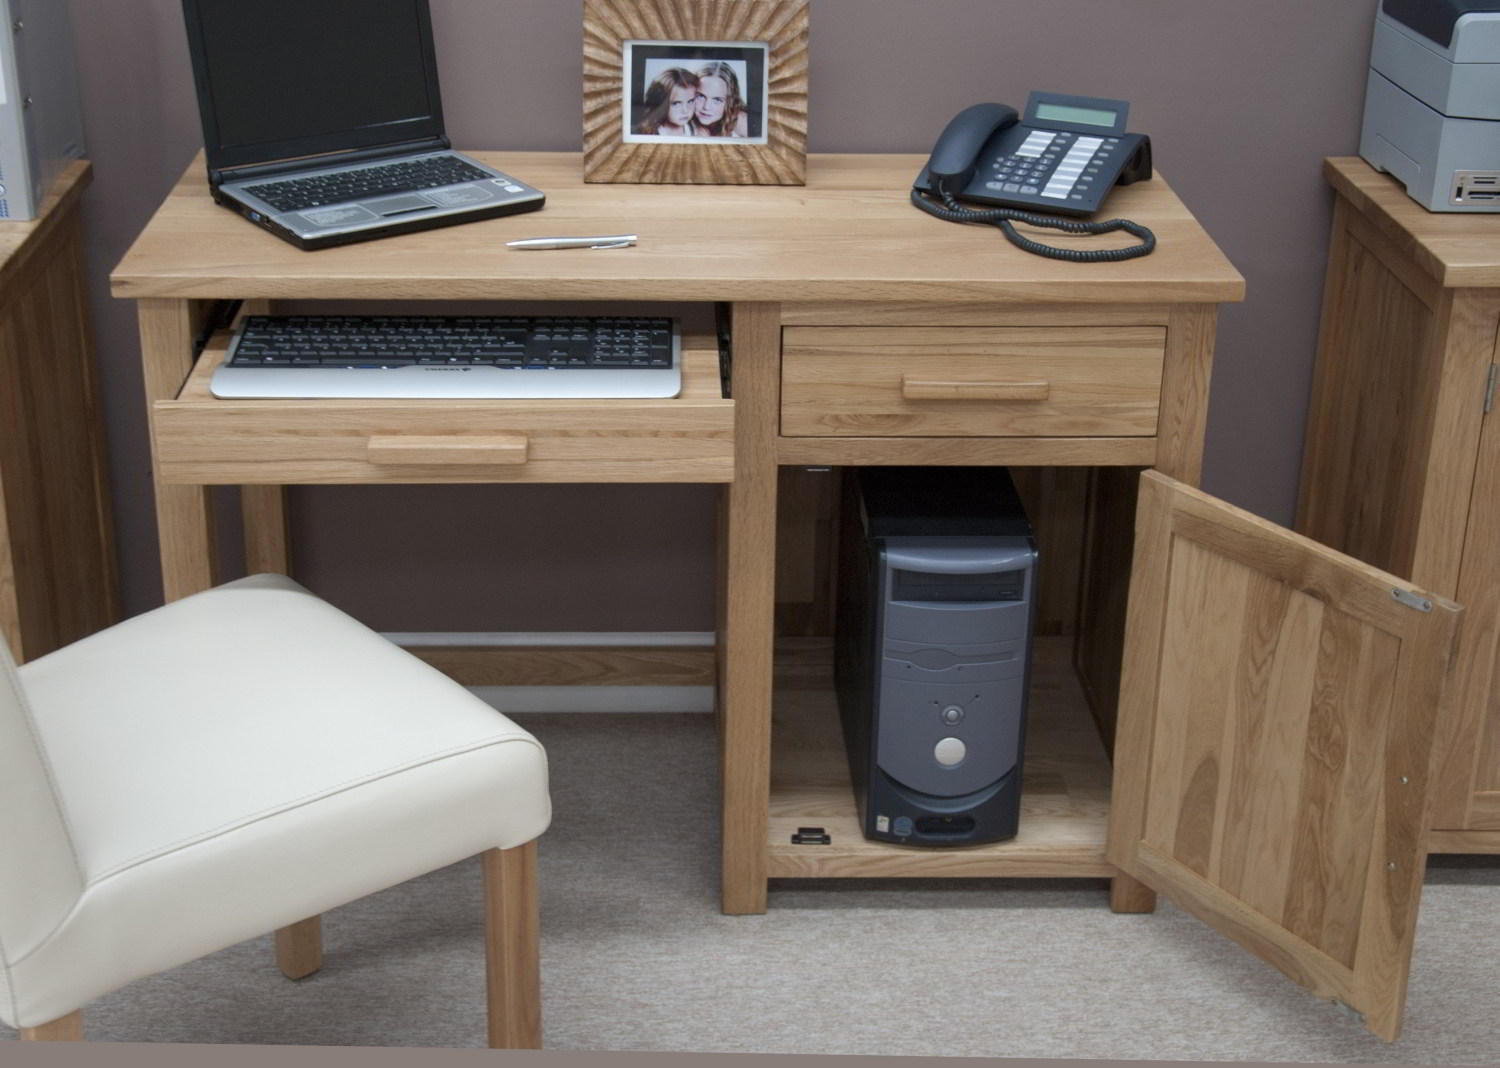 Details About Eton Solid Oak Modern Furniture Small Office PC Computer Desk